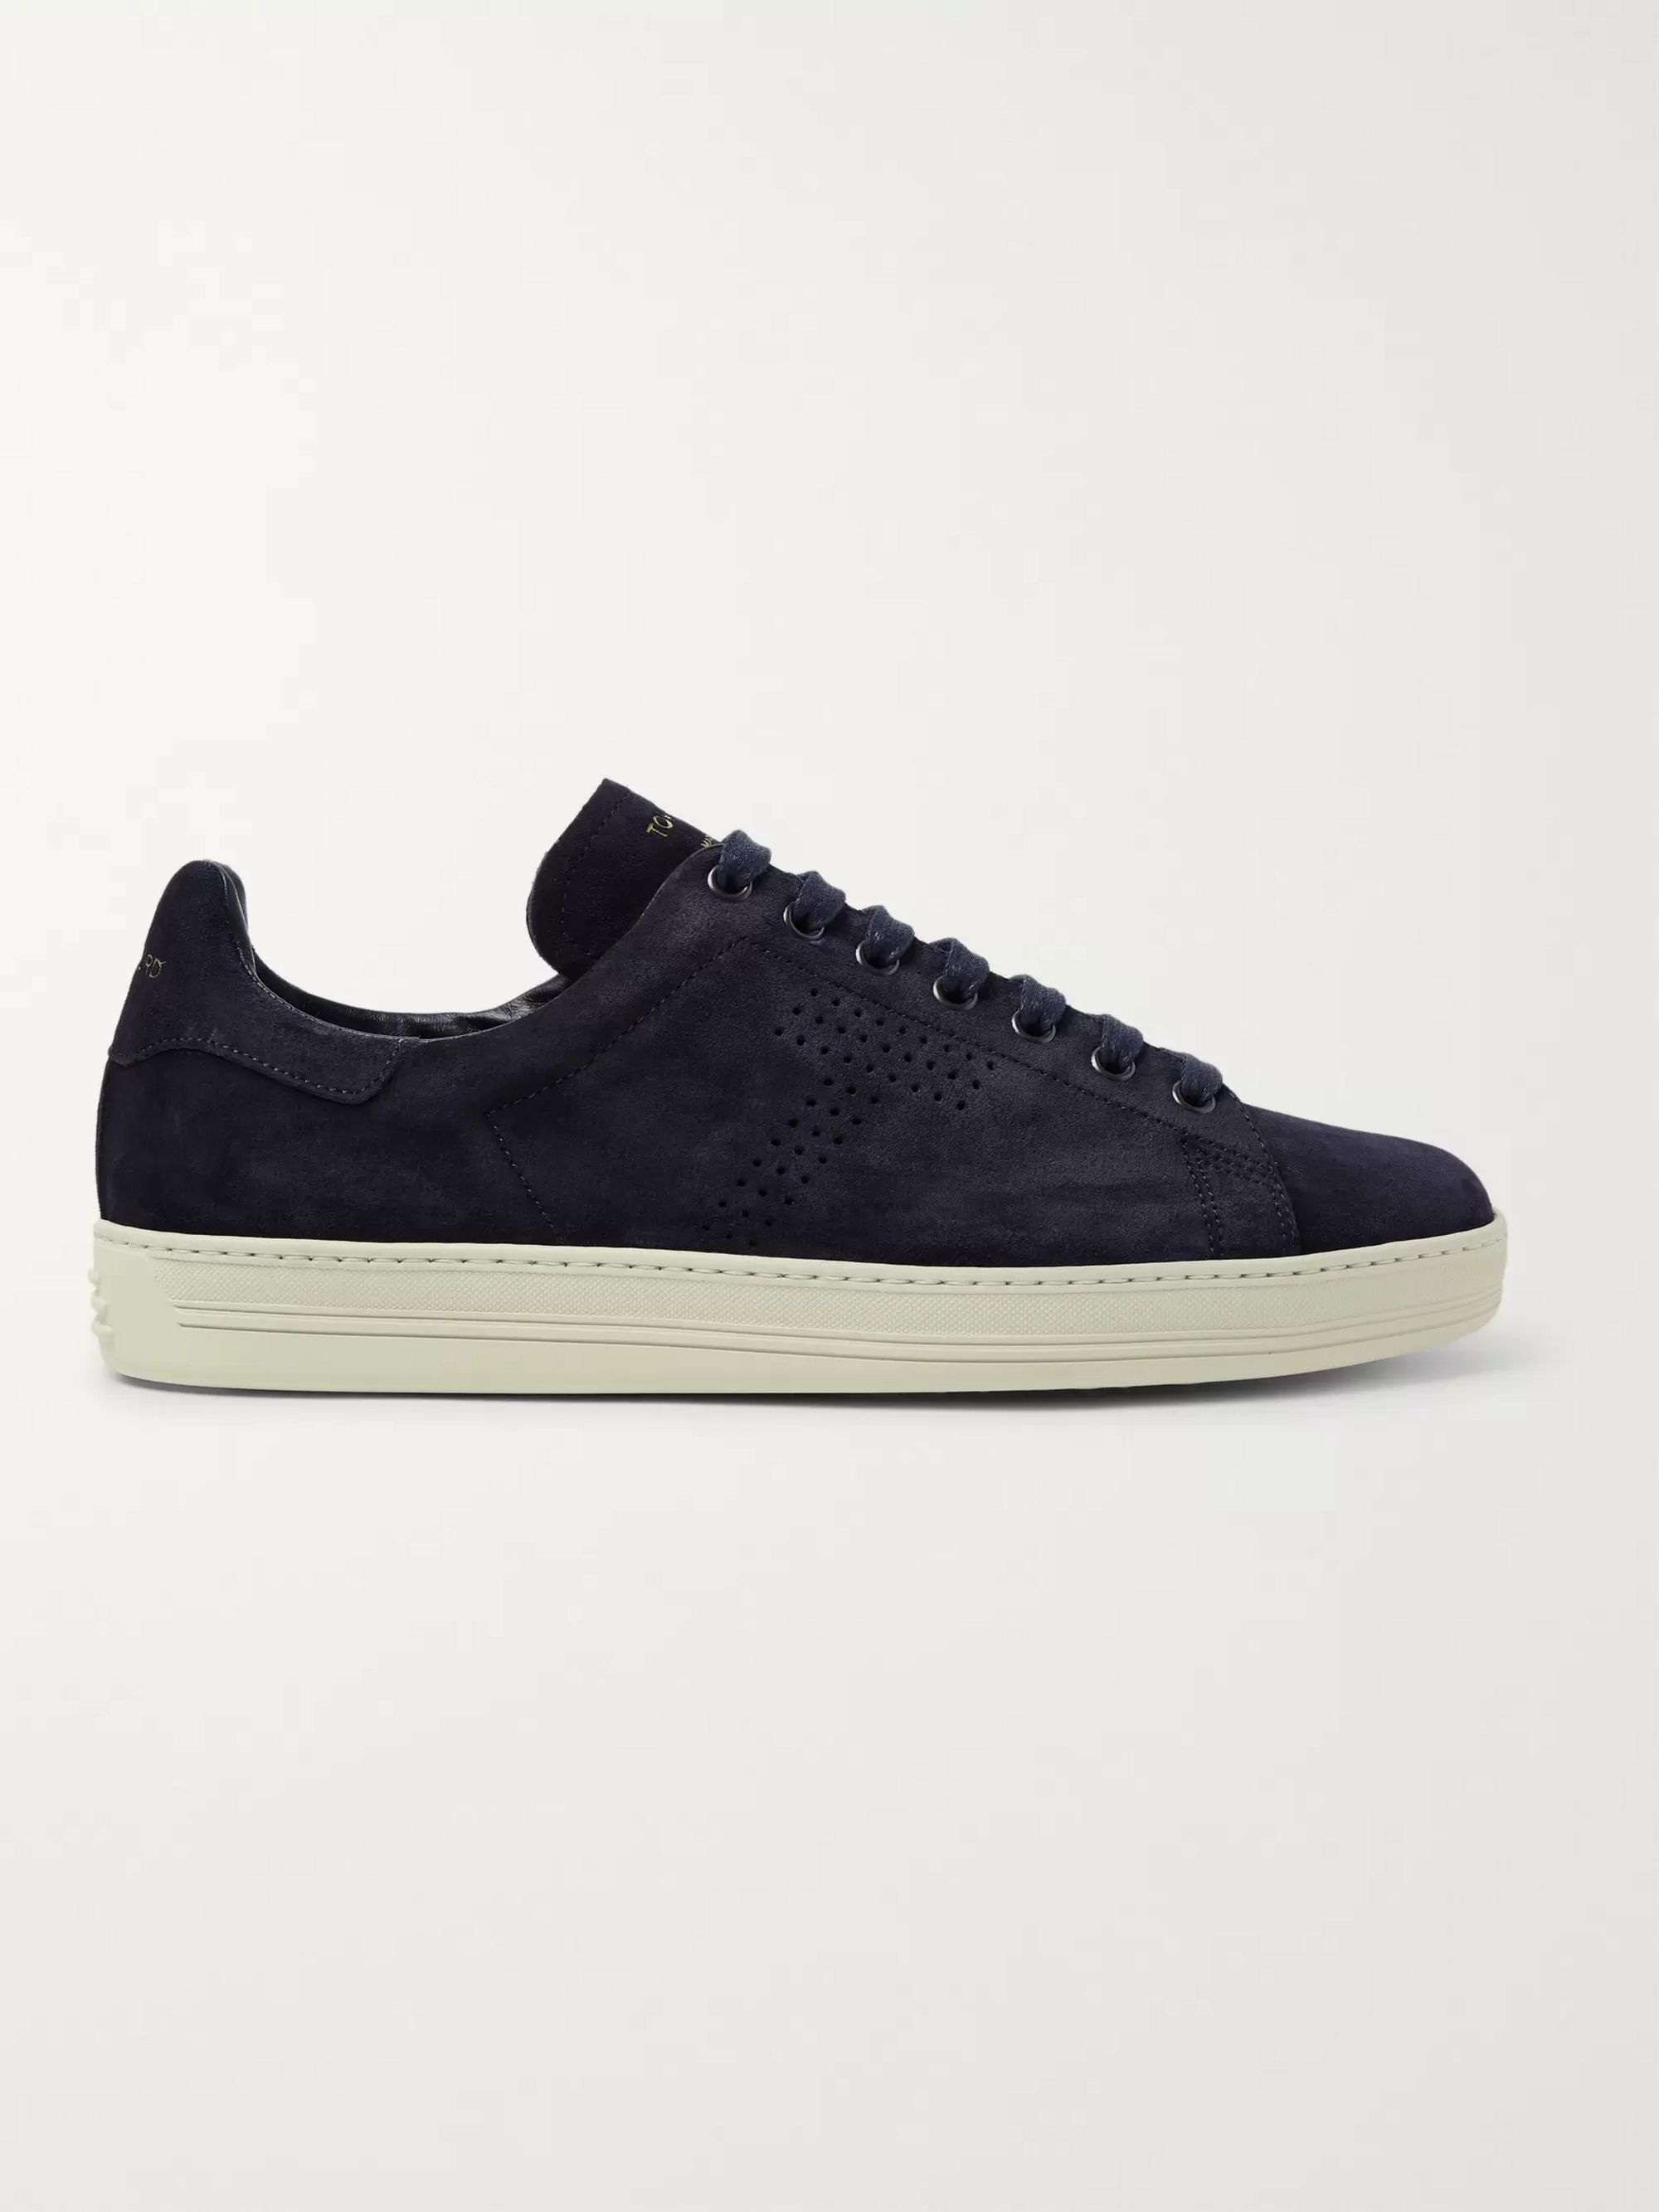 TOM FORD Warwick Perforated Suede Sneakers